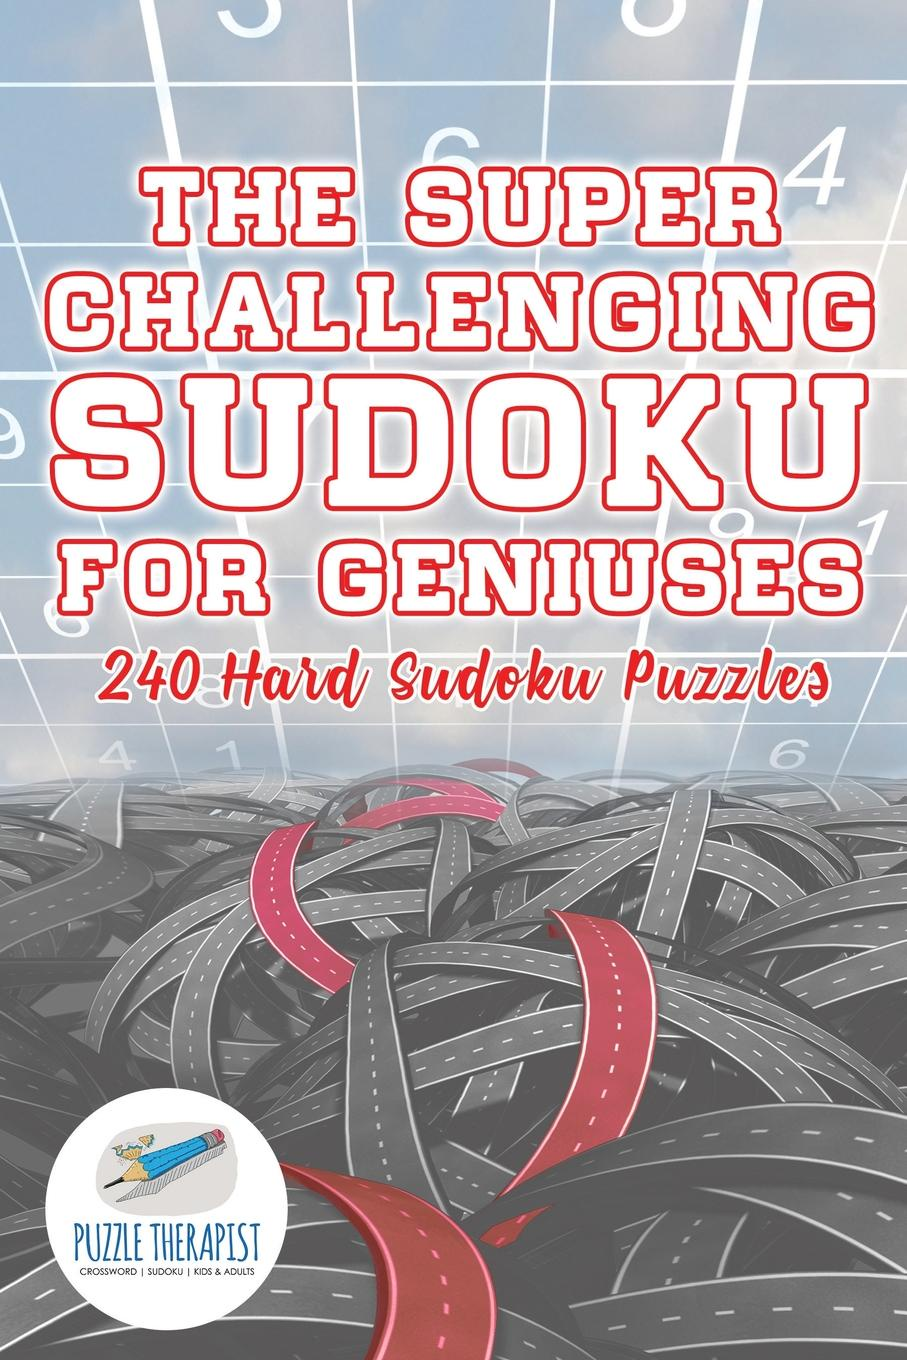 Puzzle Therapist The Super Challenging Sudoku for Geniuses . 240 Hard Sudoku Puzzles puzzle therapist the number addict s book of hard to extreme sudoku 200 challenging sudoku puzzles